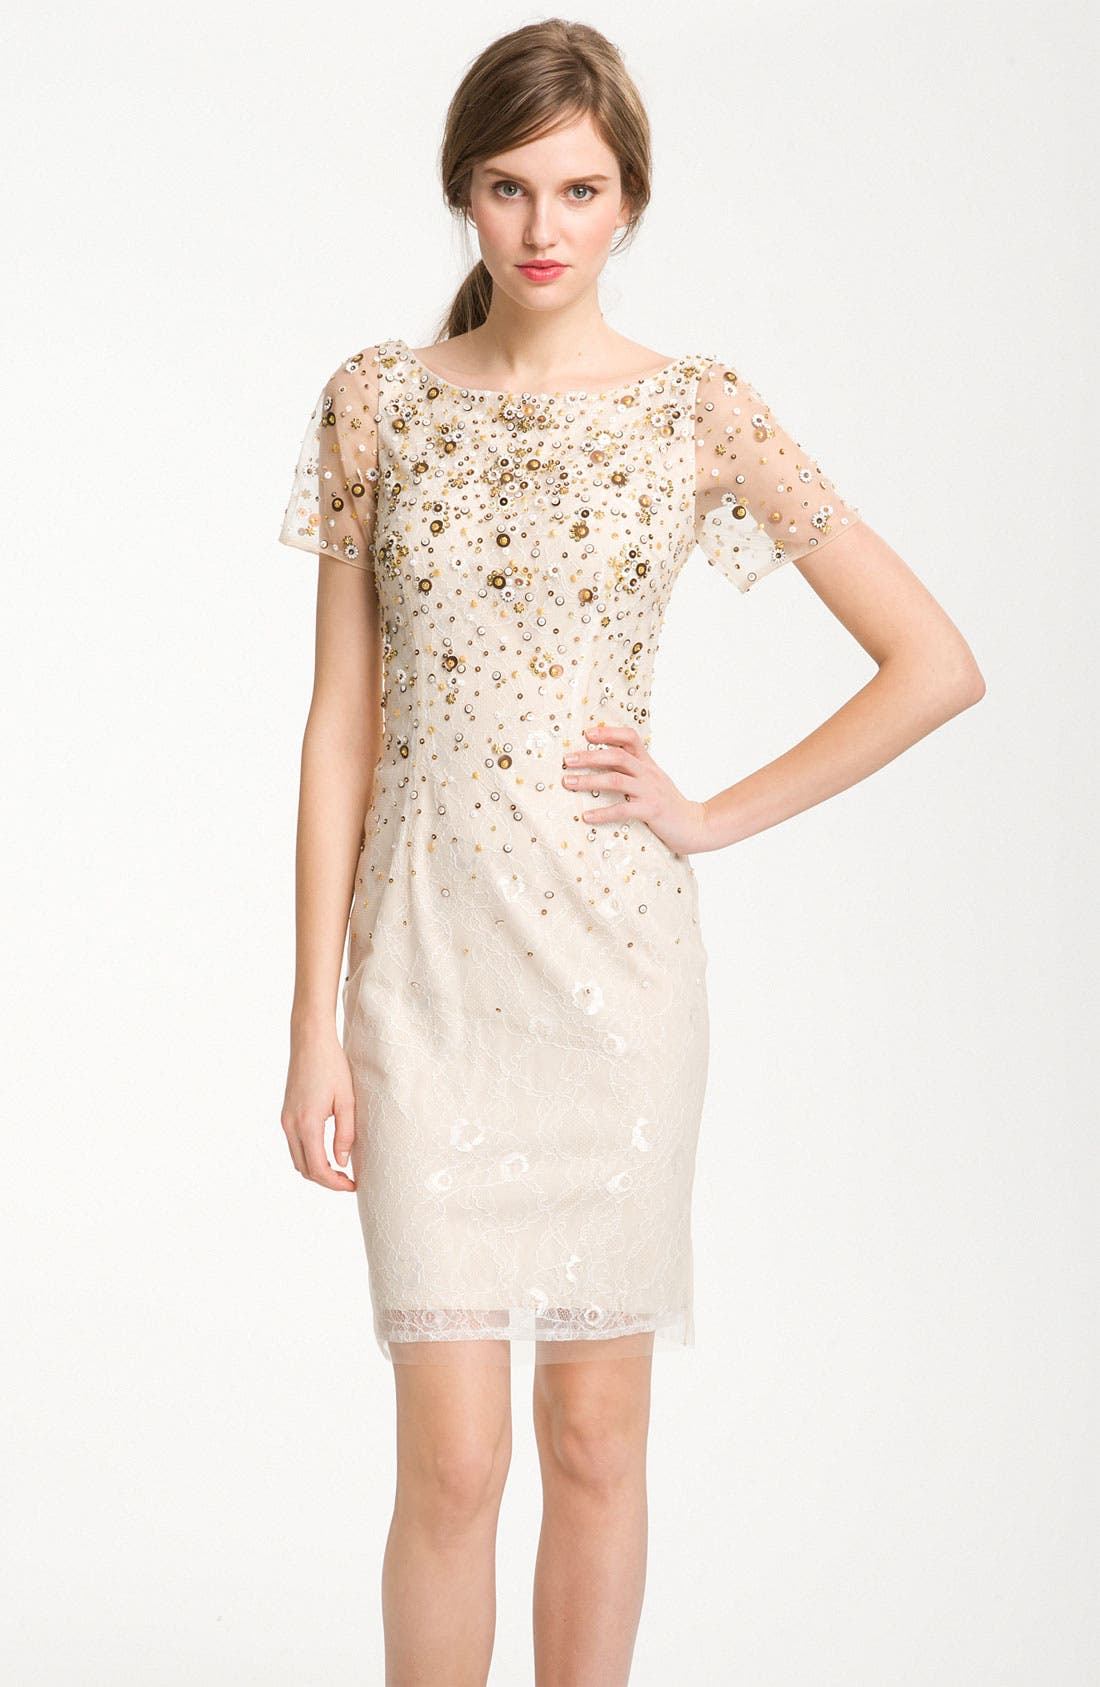 Main Image - Kathy Hilton Sheer Sleeve Sequin Cocktail Dress